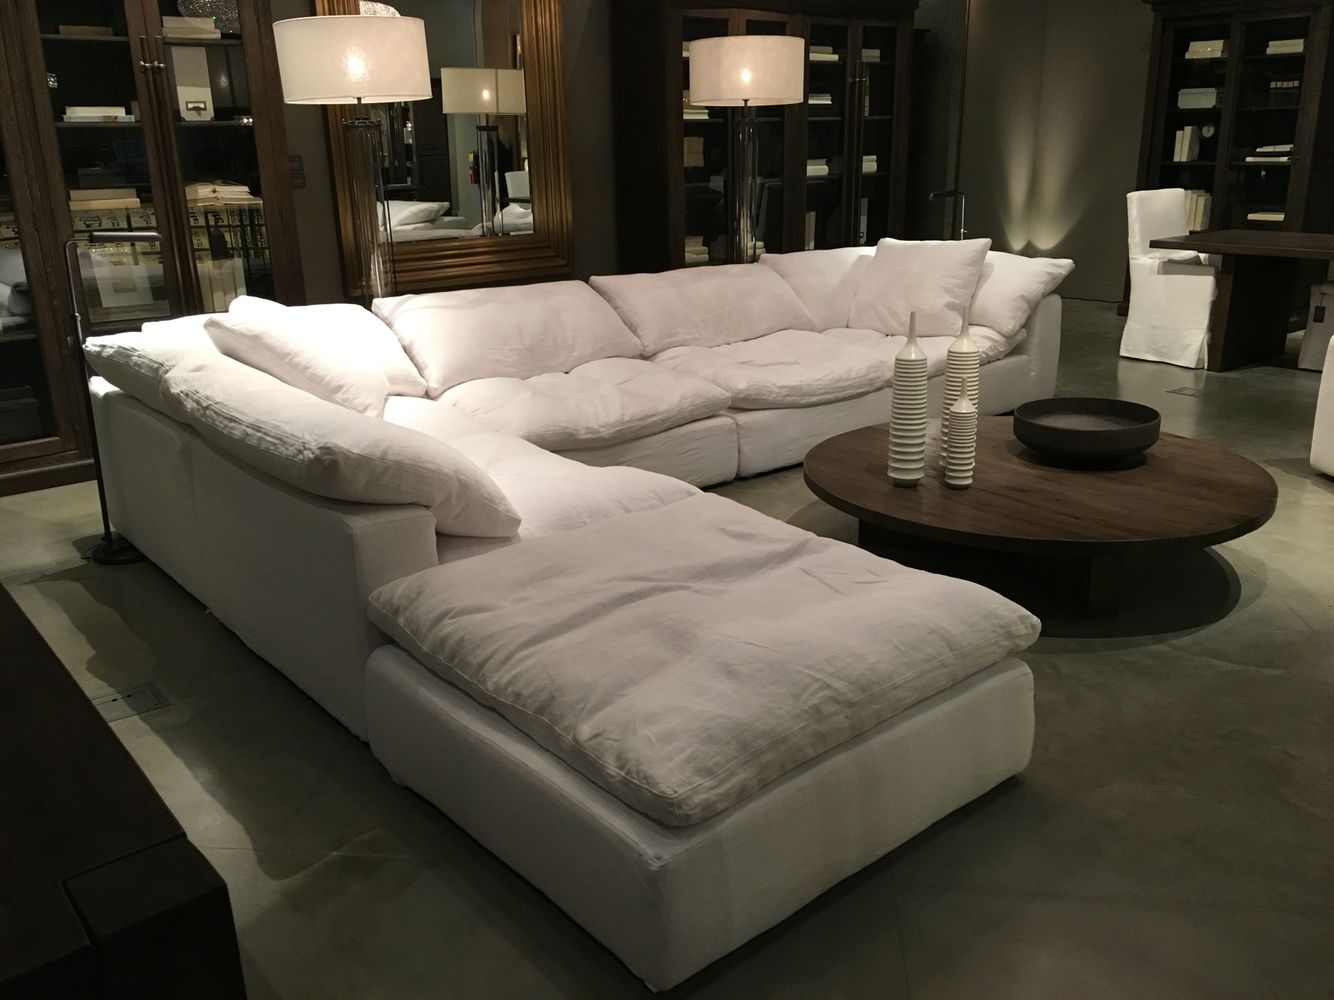 Restoration hardware sectional cloud couch future for Comfy couches for sale